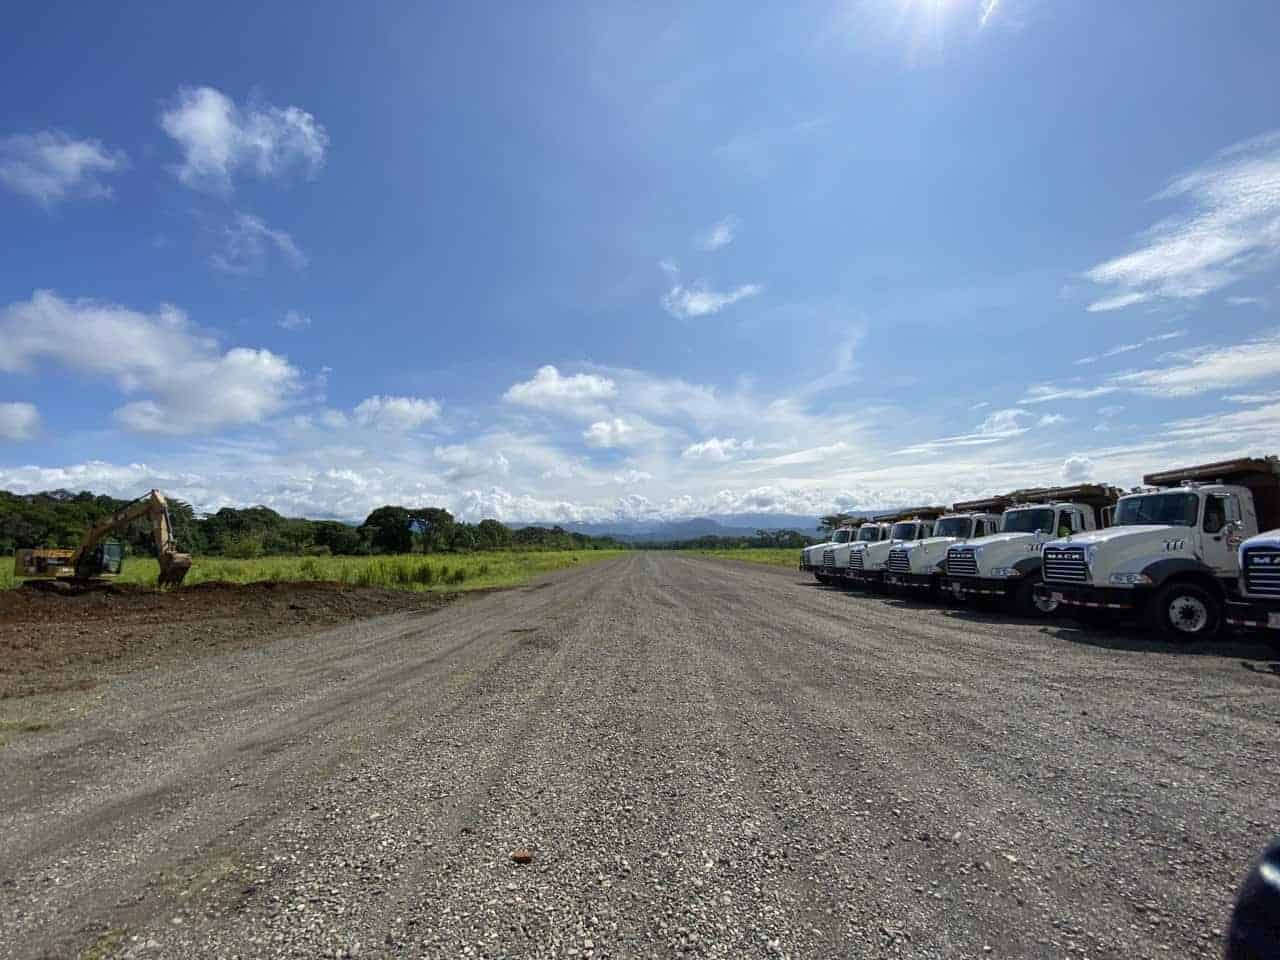 The airstrip at La Managua Airport in Quepos, Puntarenas, Costa Rica.